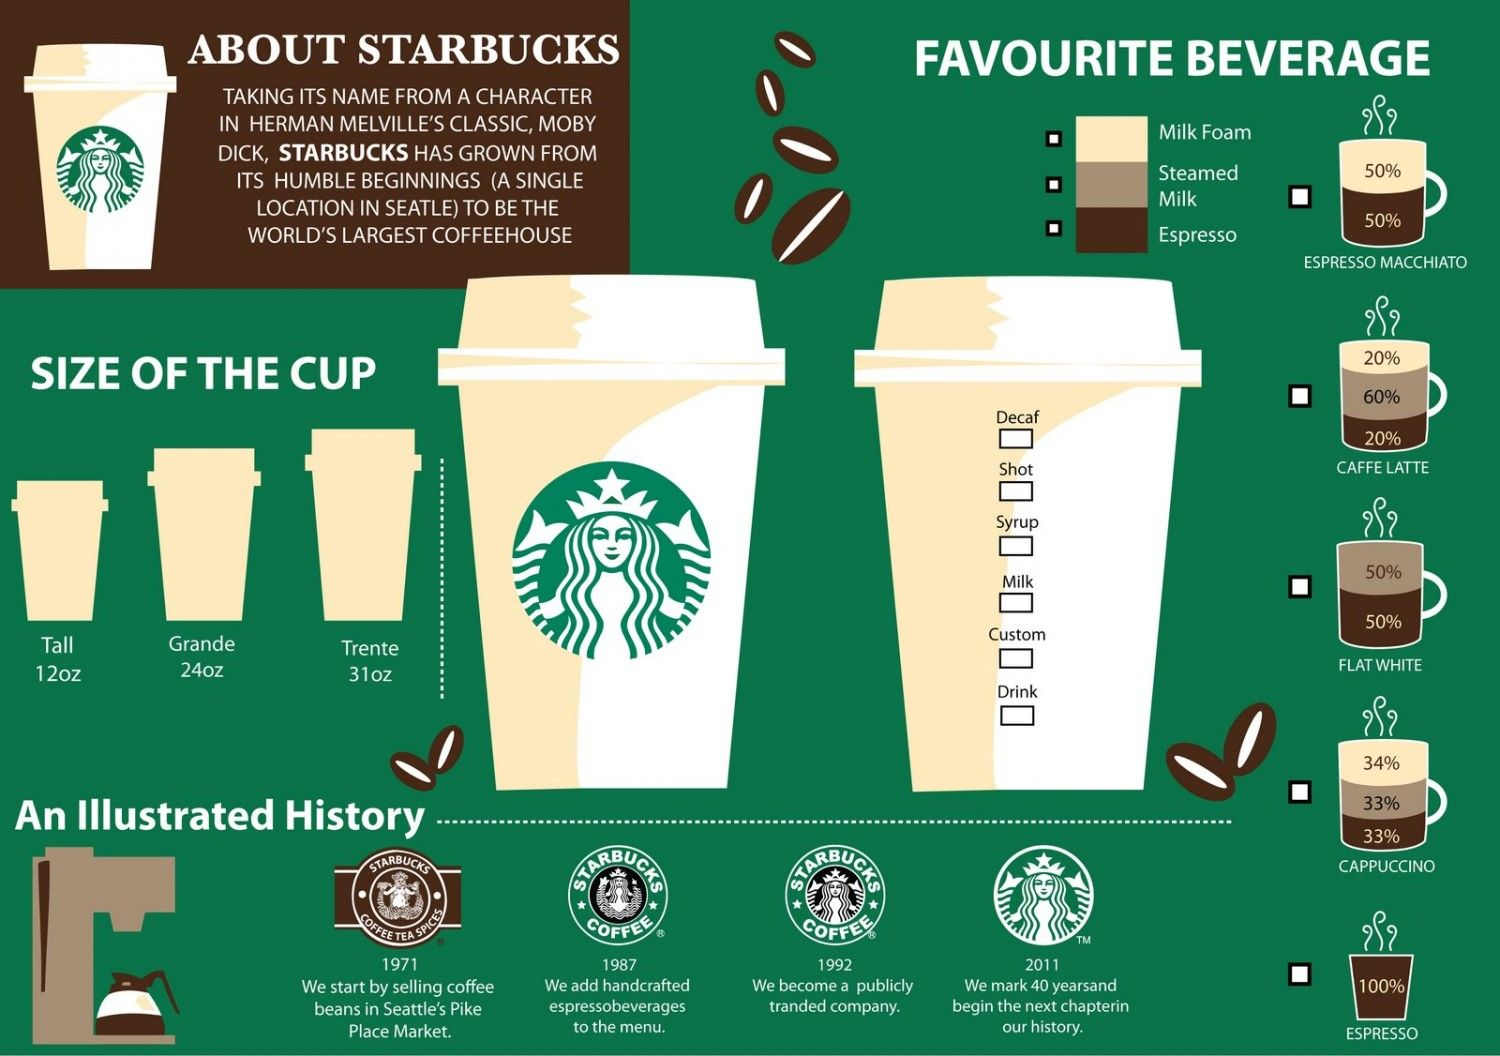 Starbucks Marketing Analysis Caracterystics Size Cup Color Favourite Beverage Kopi Starbucks Kopi Desain